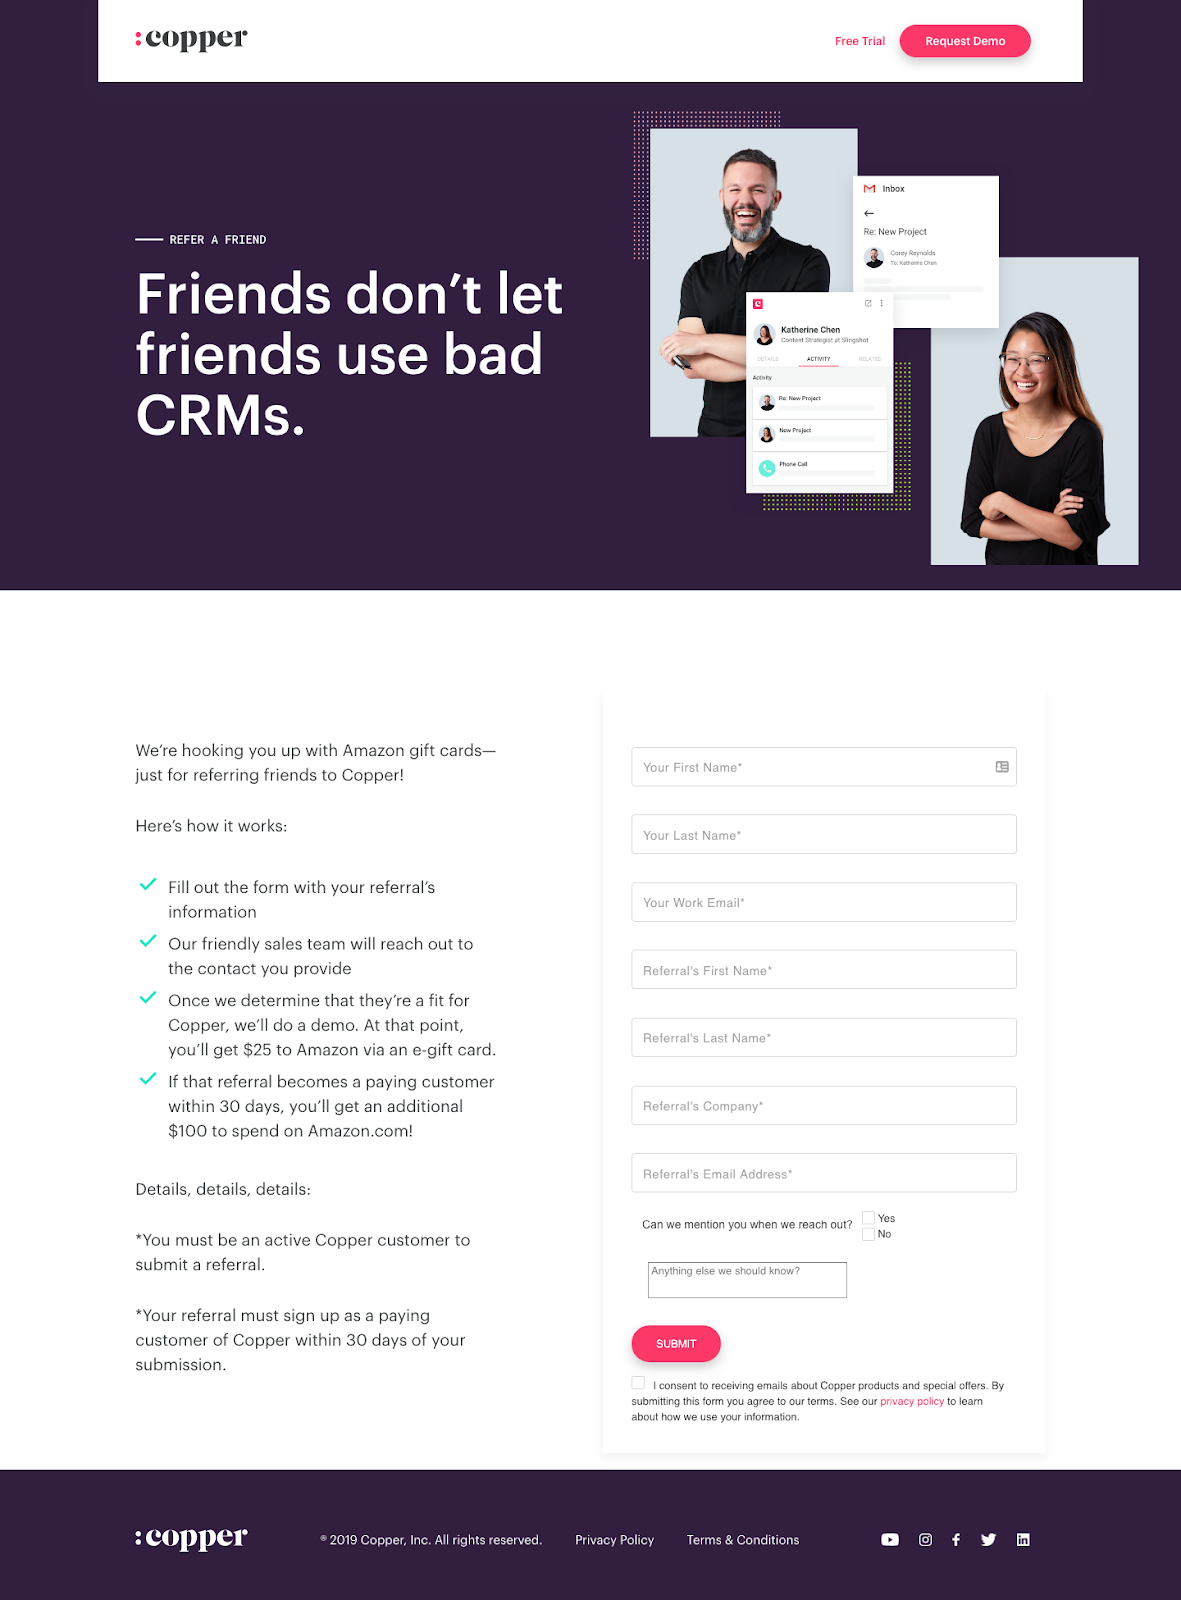 copper crm referral marketing example.